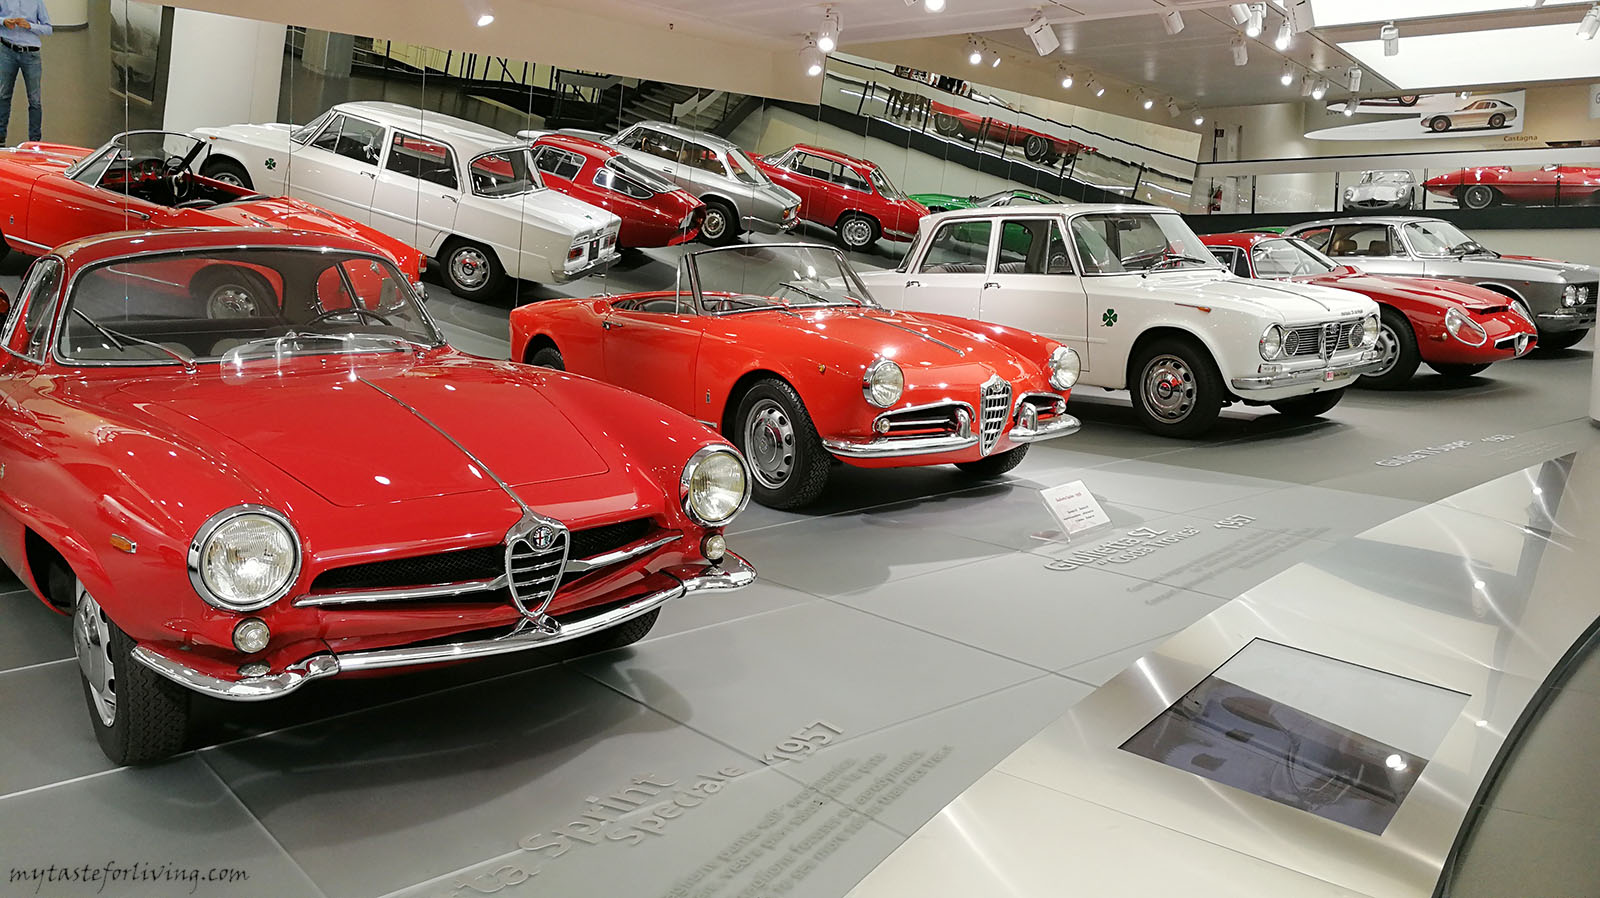 """The Alfa Romeo History Museum"" (Museo Storico Alfa Romeo) of the italian automotive company was opened on december 18, 1976. The museum was built in the city of Arese, 12 km from Milan."